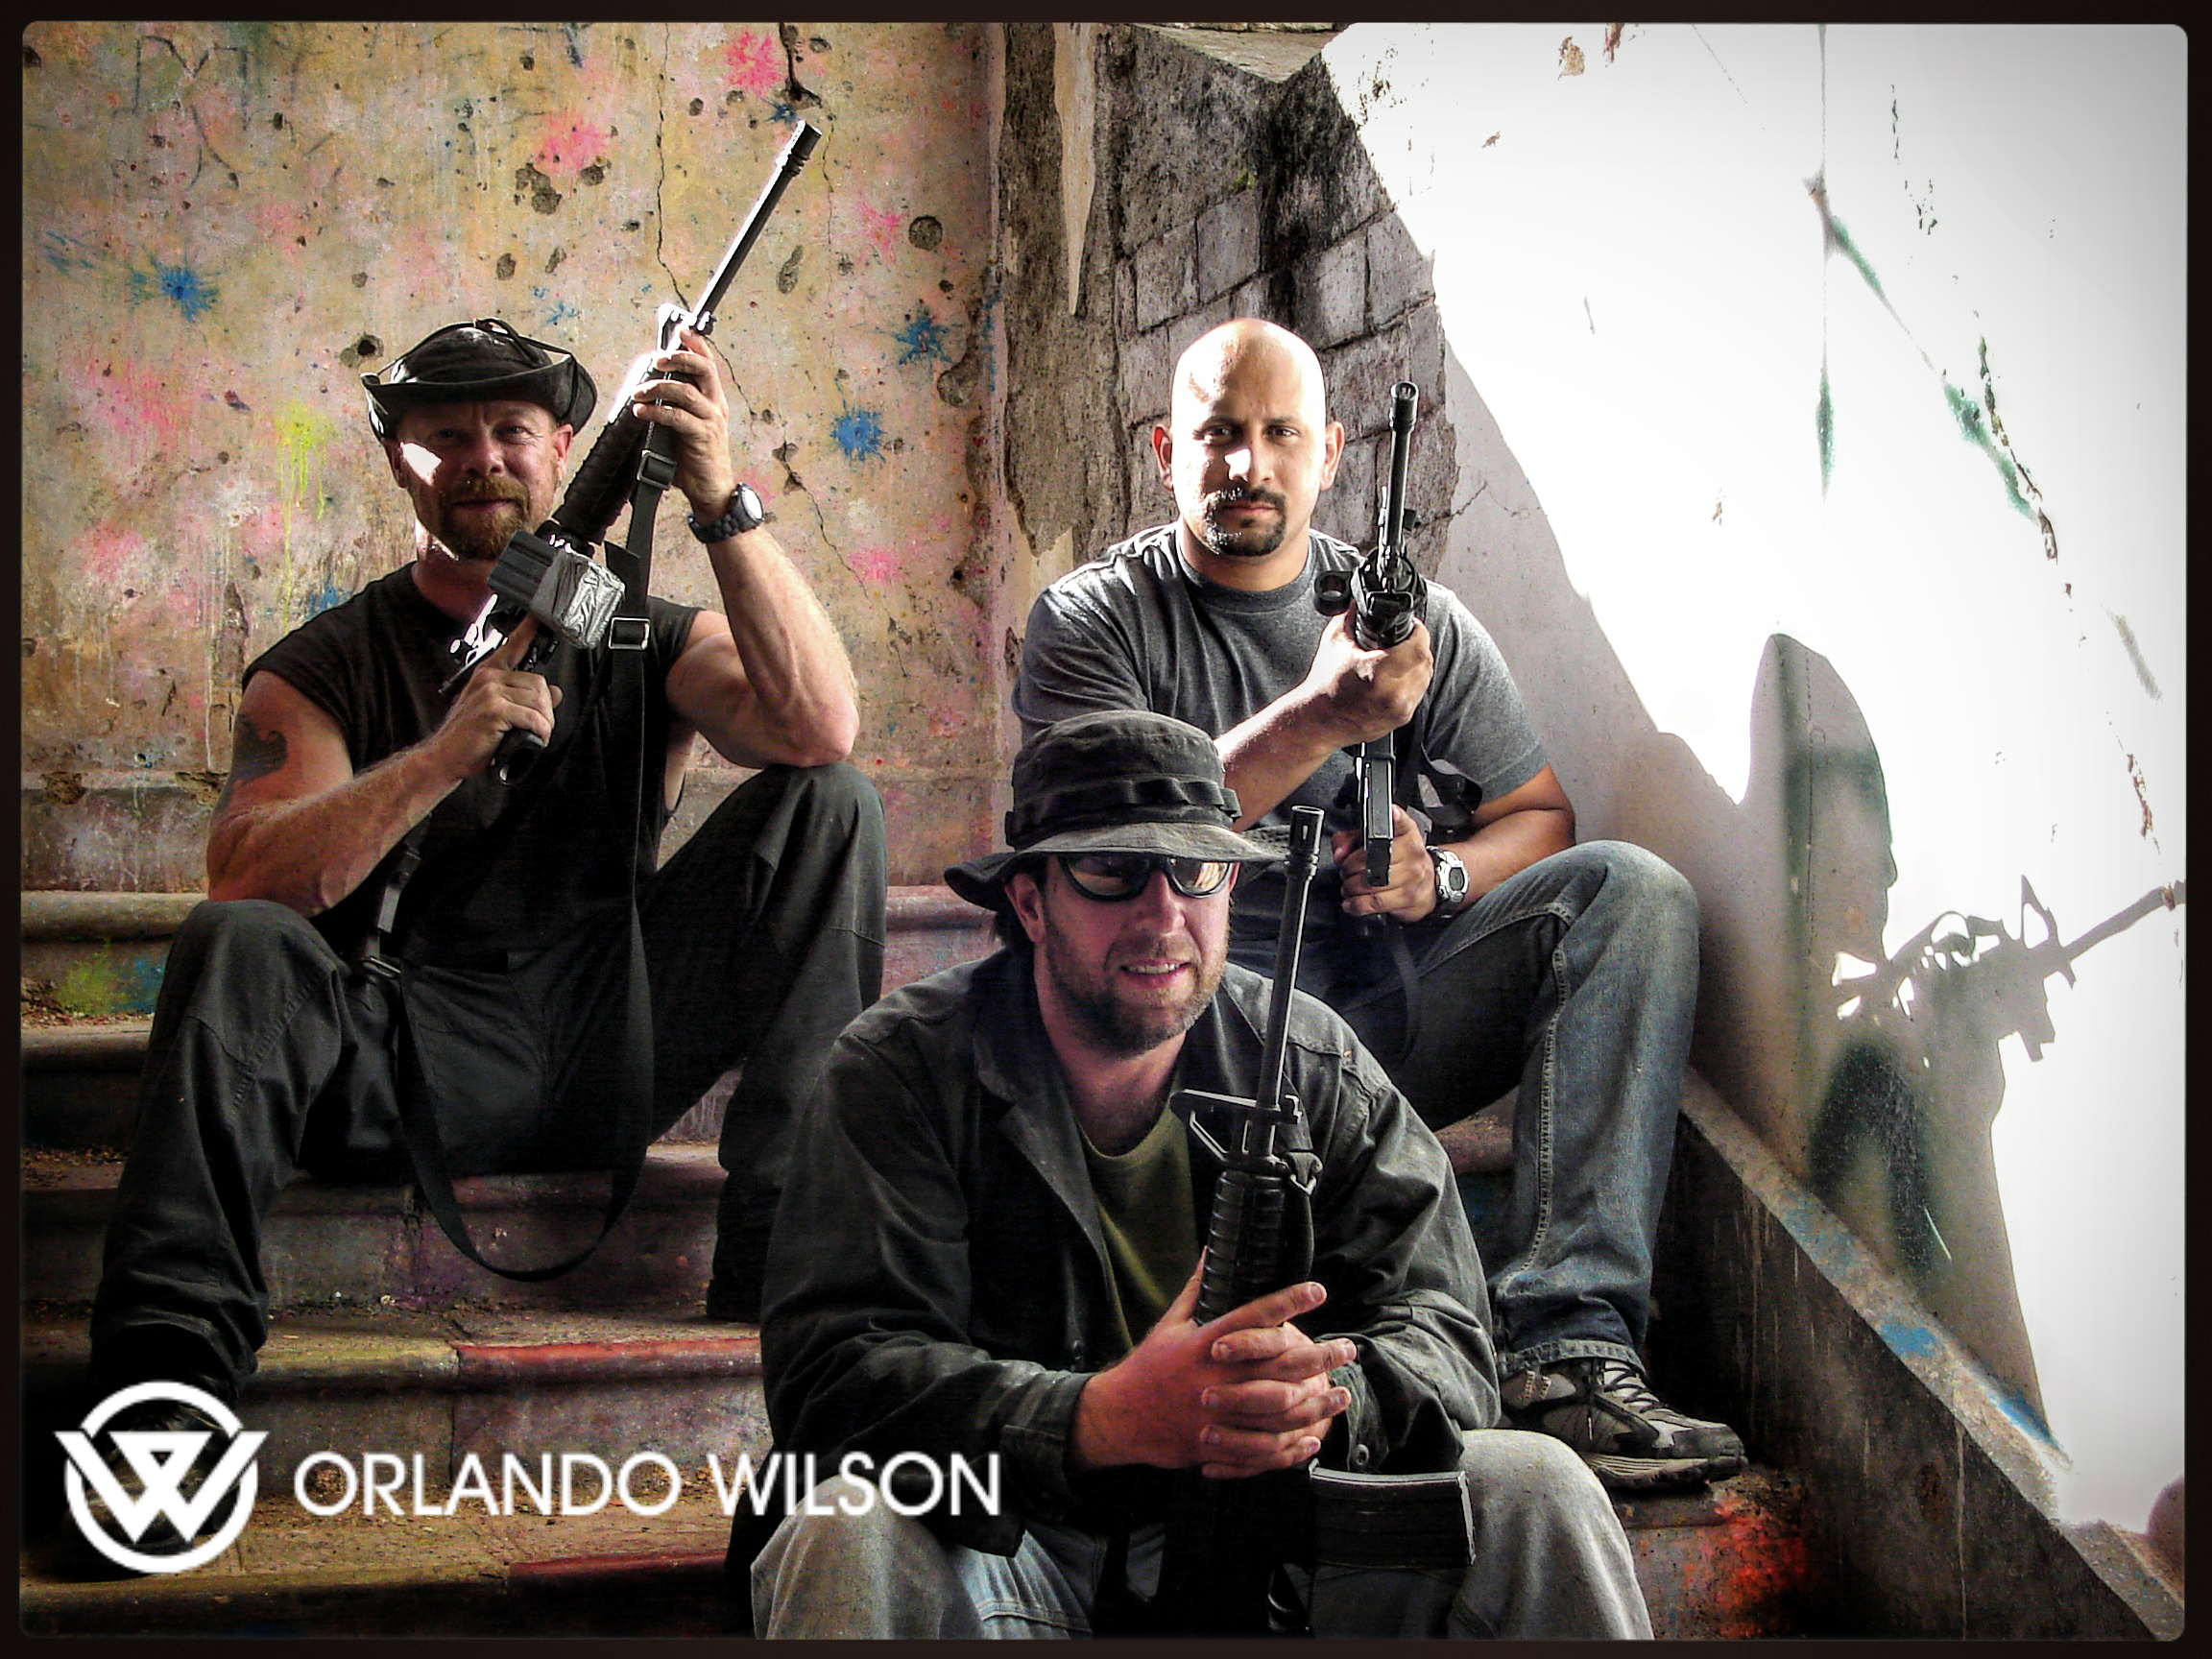 Orlando Wilson – Tactical, Weapons & Security Expert